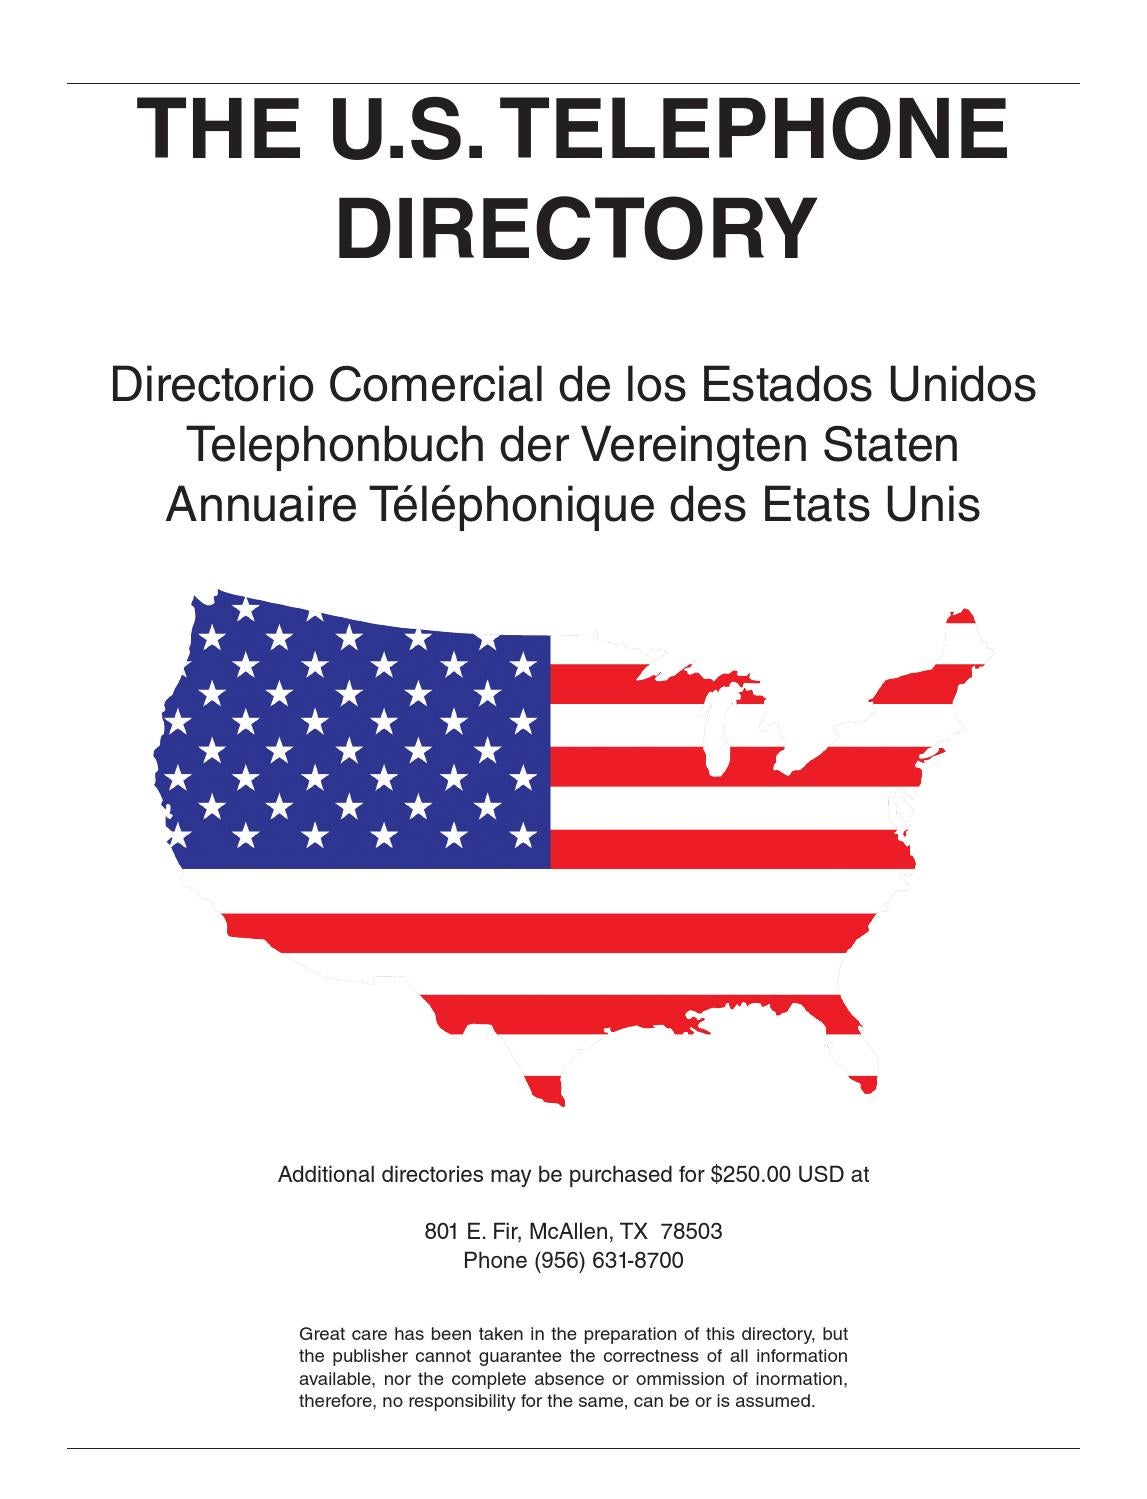 8d13ecdaf87a The U.S. Telephone Directory by El Periodico U.S.A. - Issuu